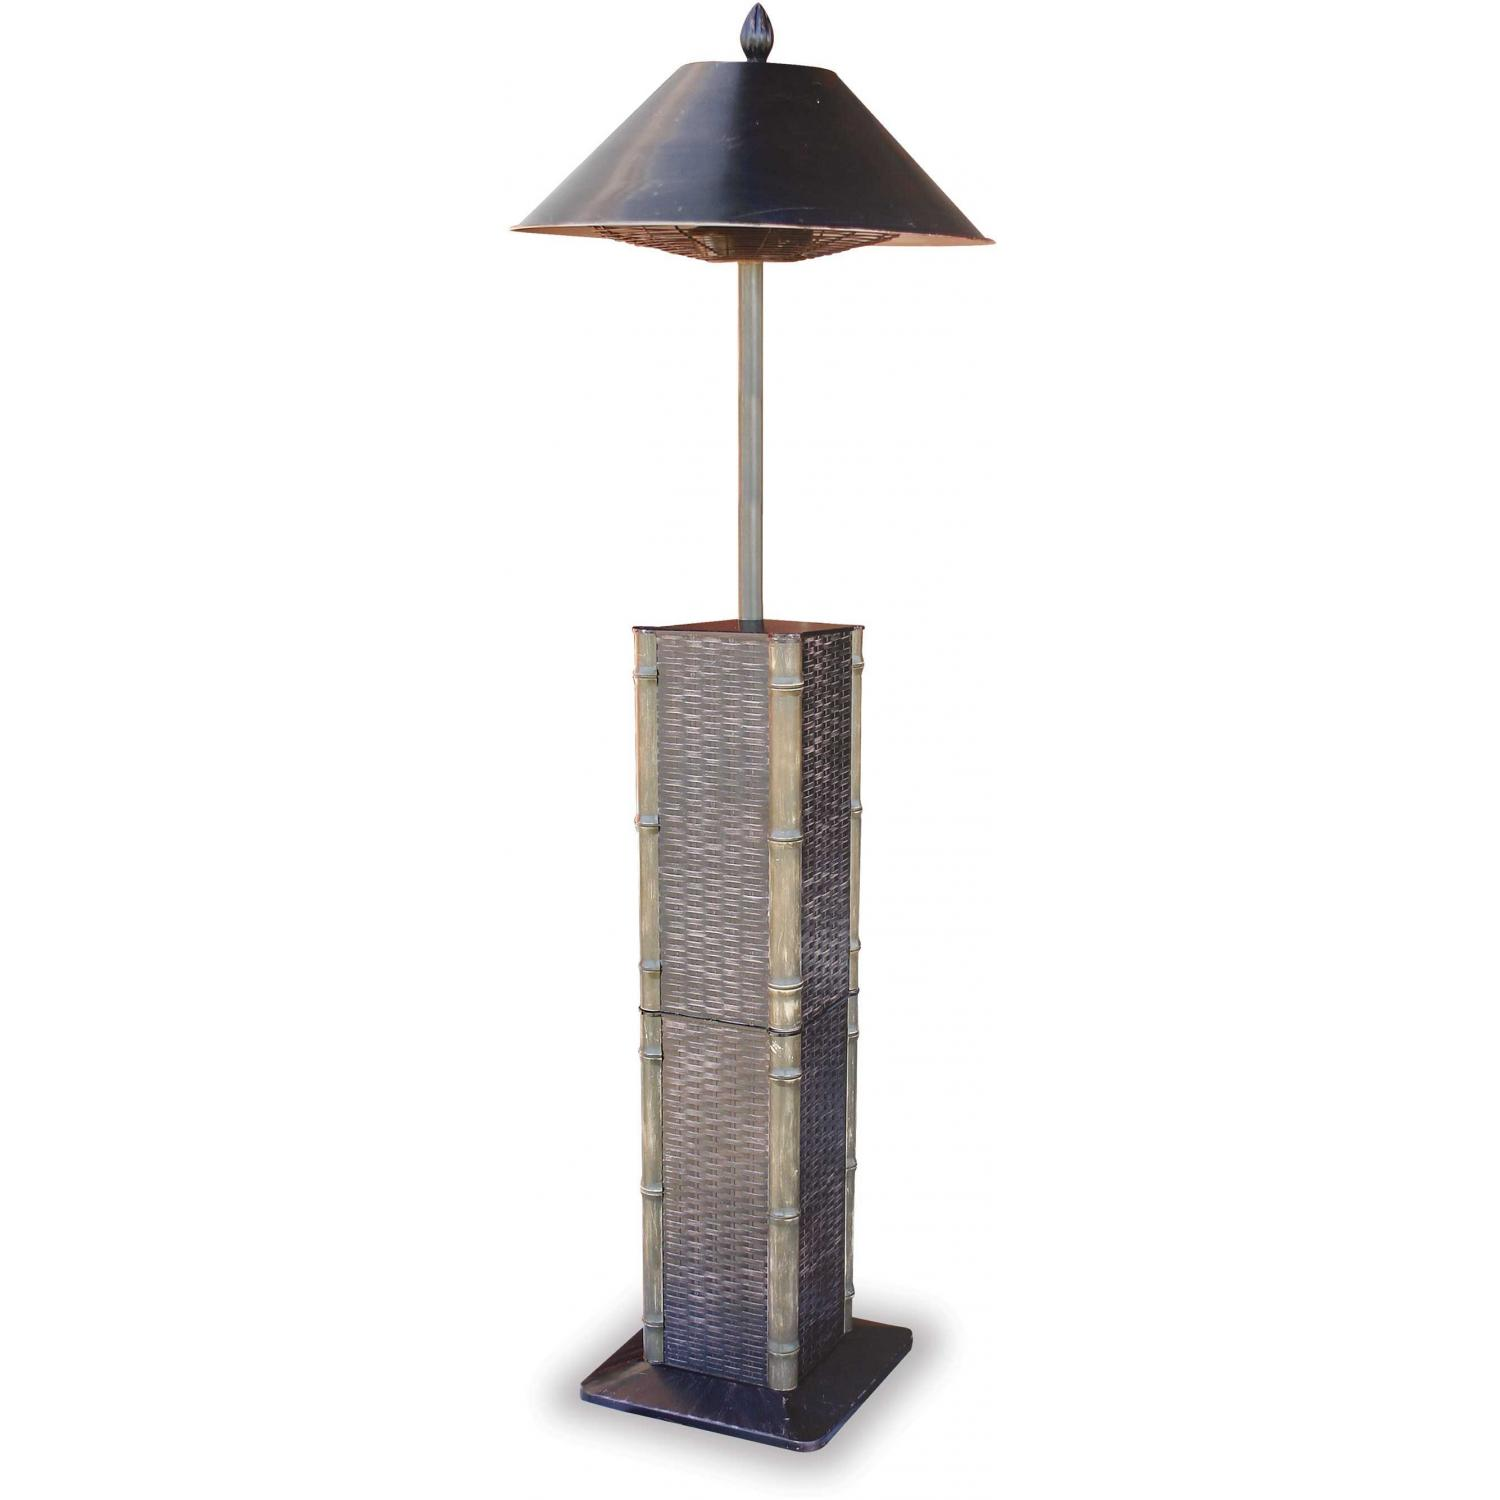 Endless Summer Patio Heaters Sumatra Style Cast Aluminum Electric Patio Heater